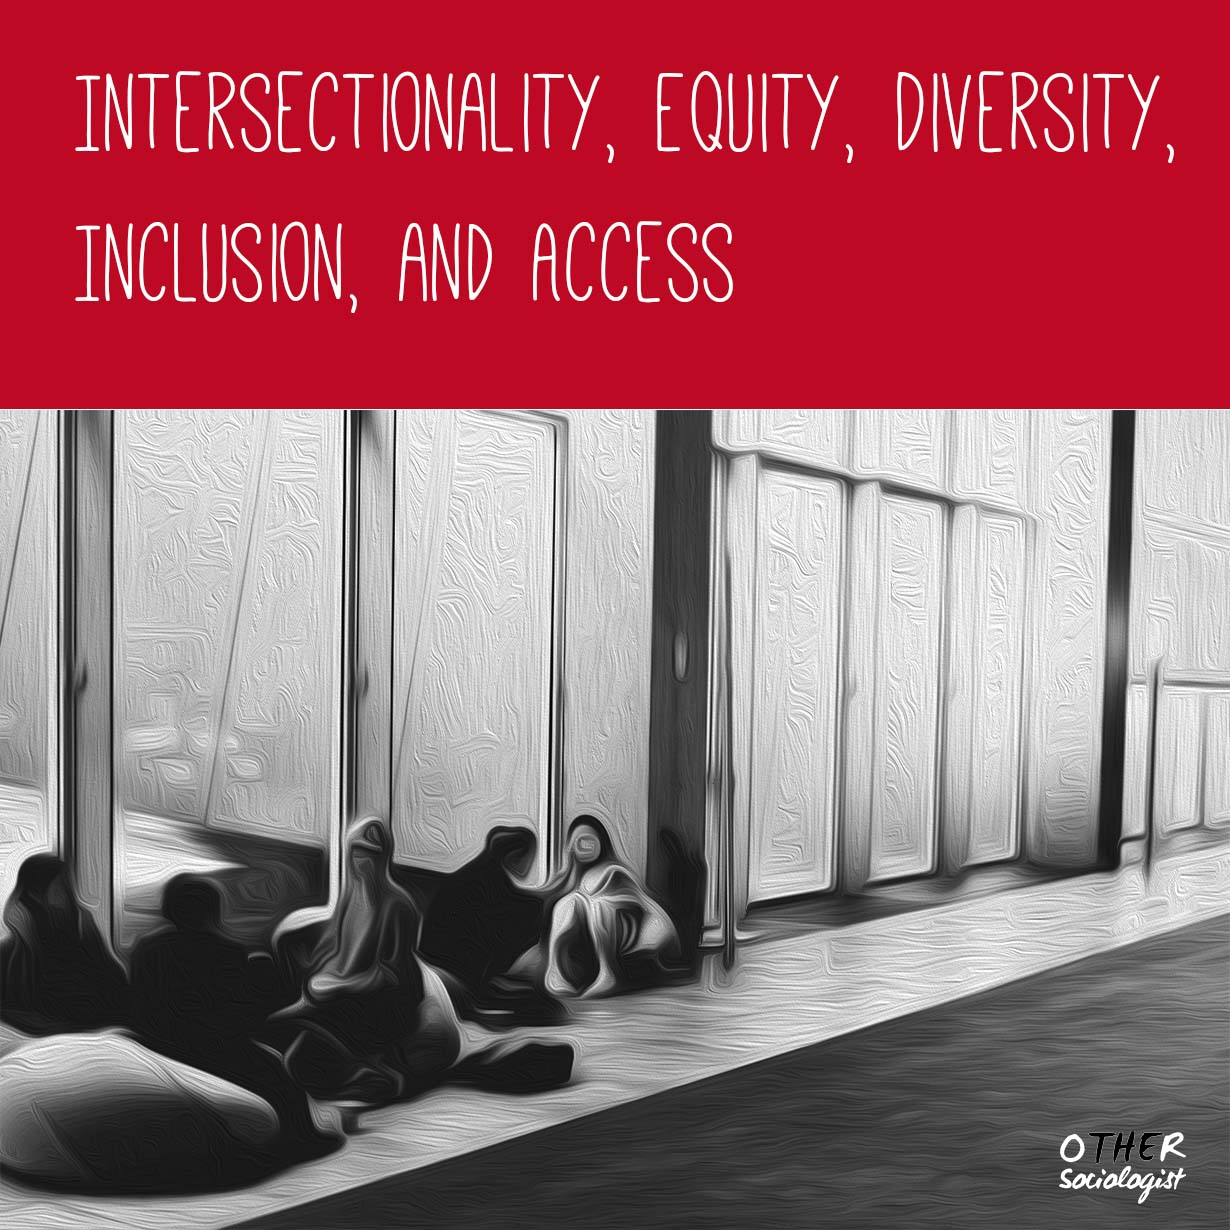 Intersectionality in academia and research